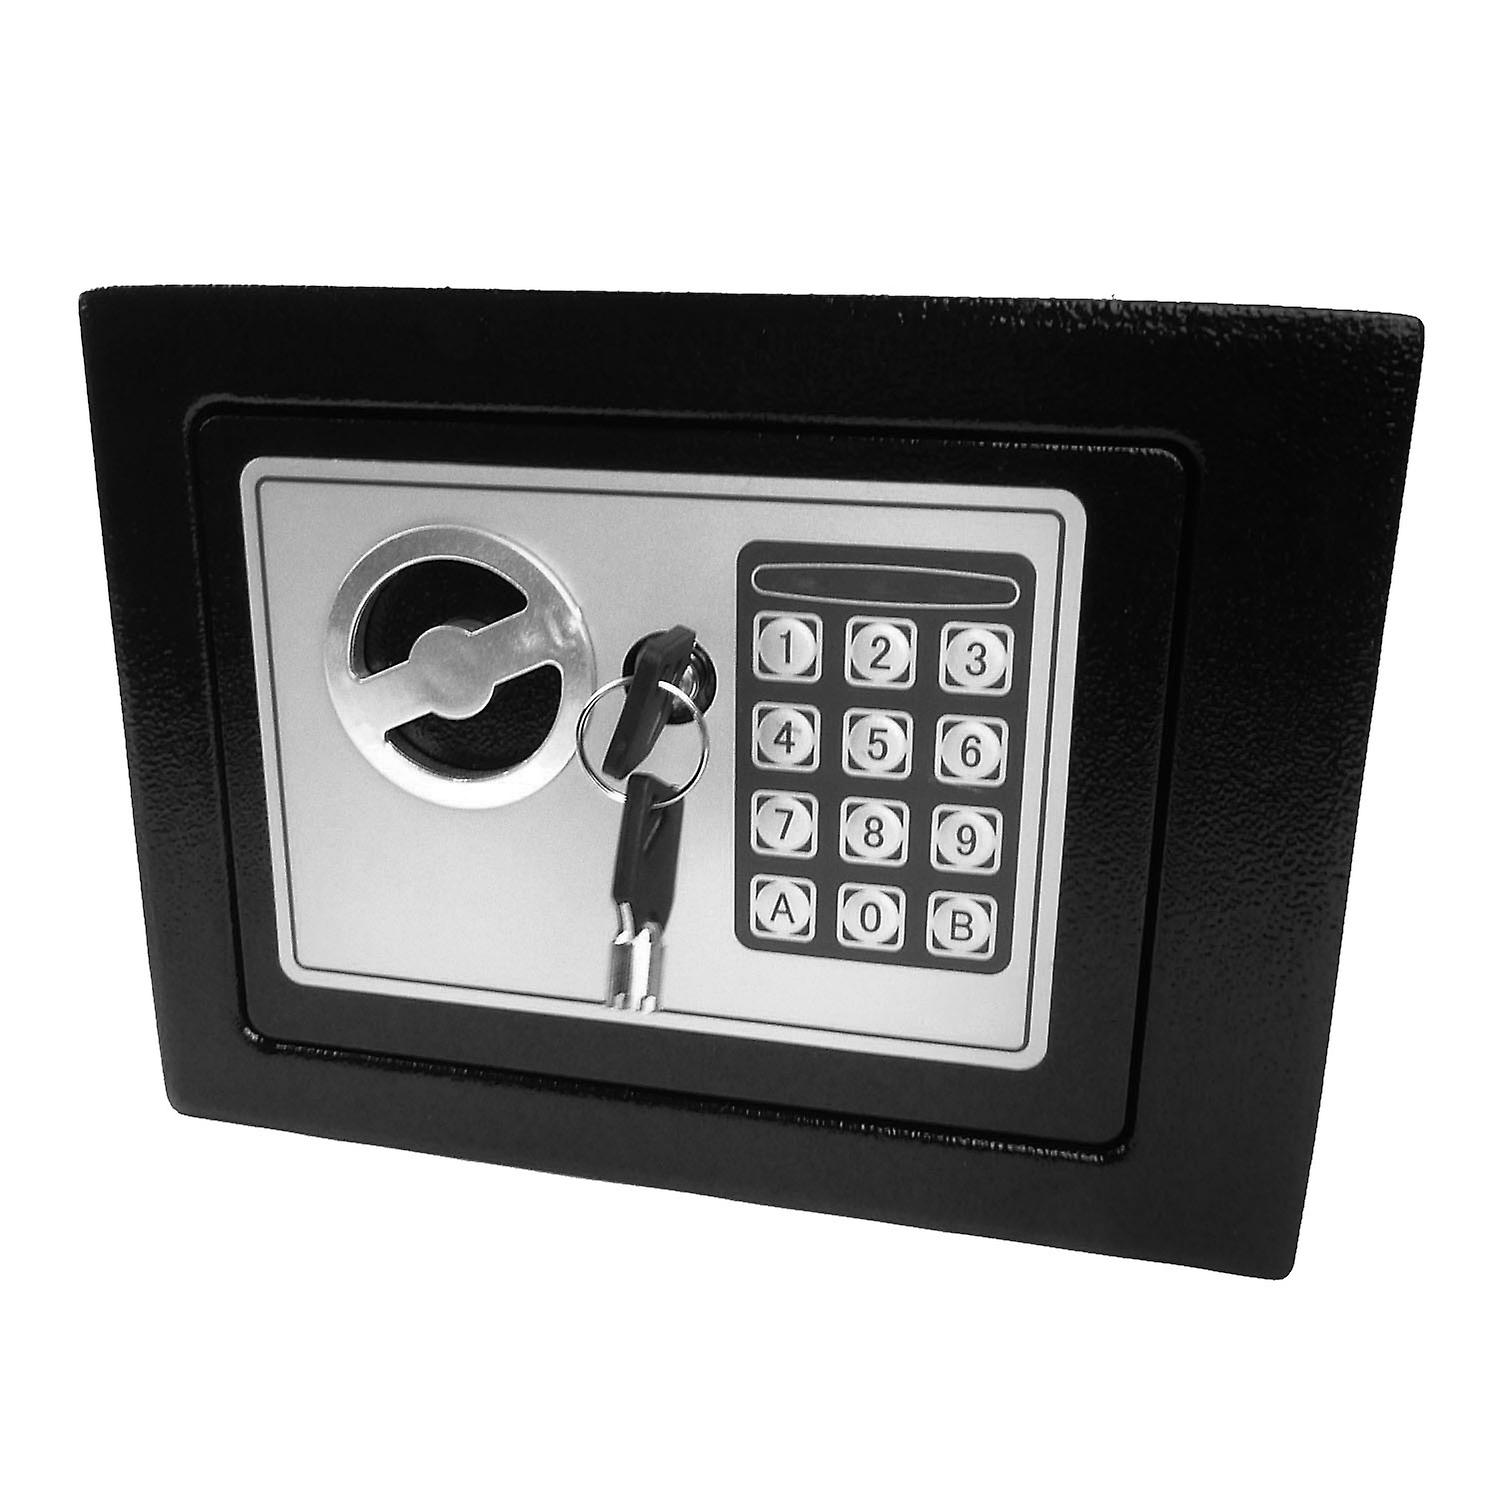 Hyfive Safebox For Home, High Security Steel small home Office Digital Electronic Safe Box with Two Keys Small Value Safe with Digital Keypad for Extra Security